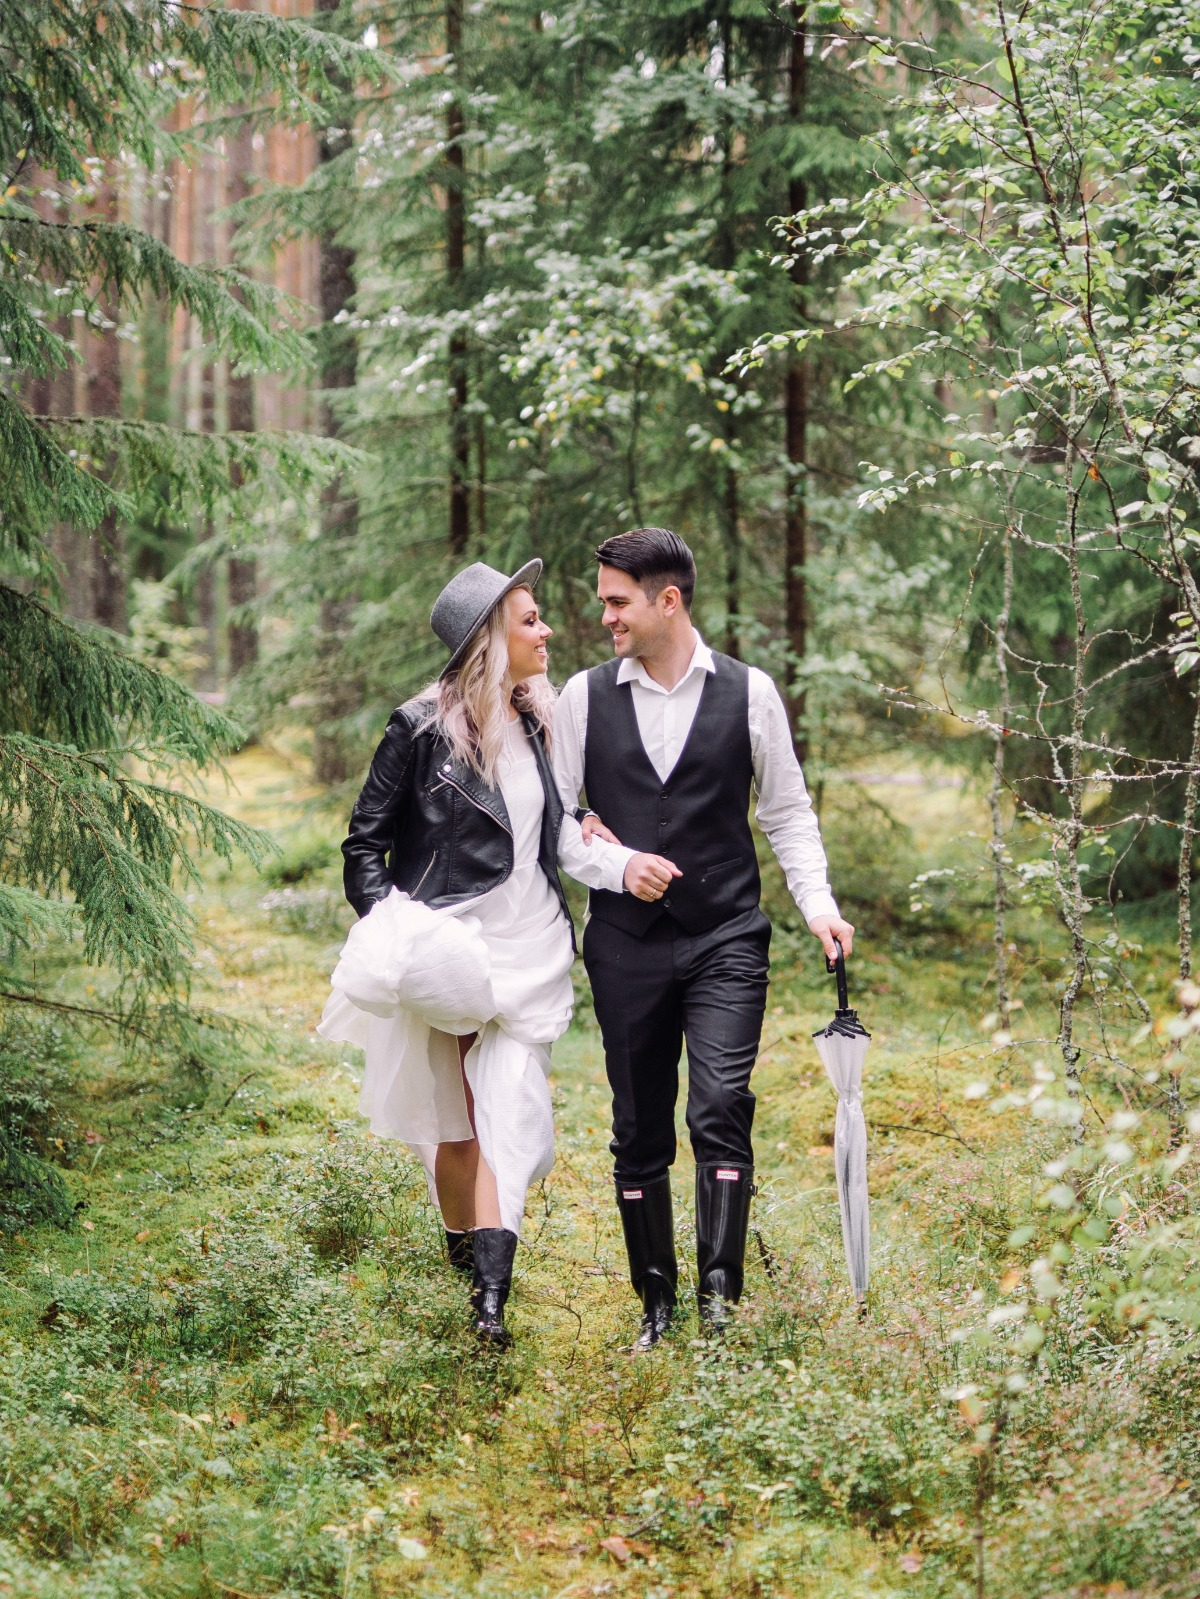 wedding couple in the forest with a new age vibe